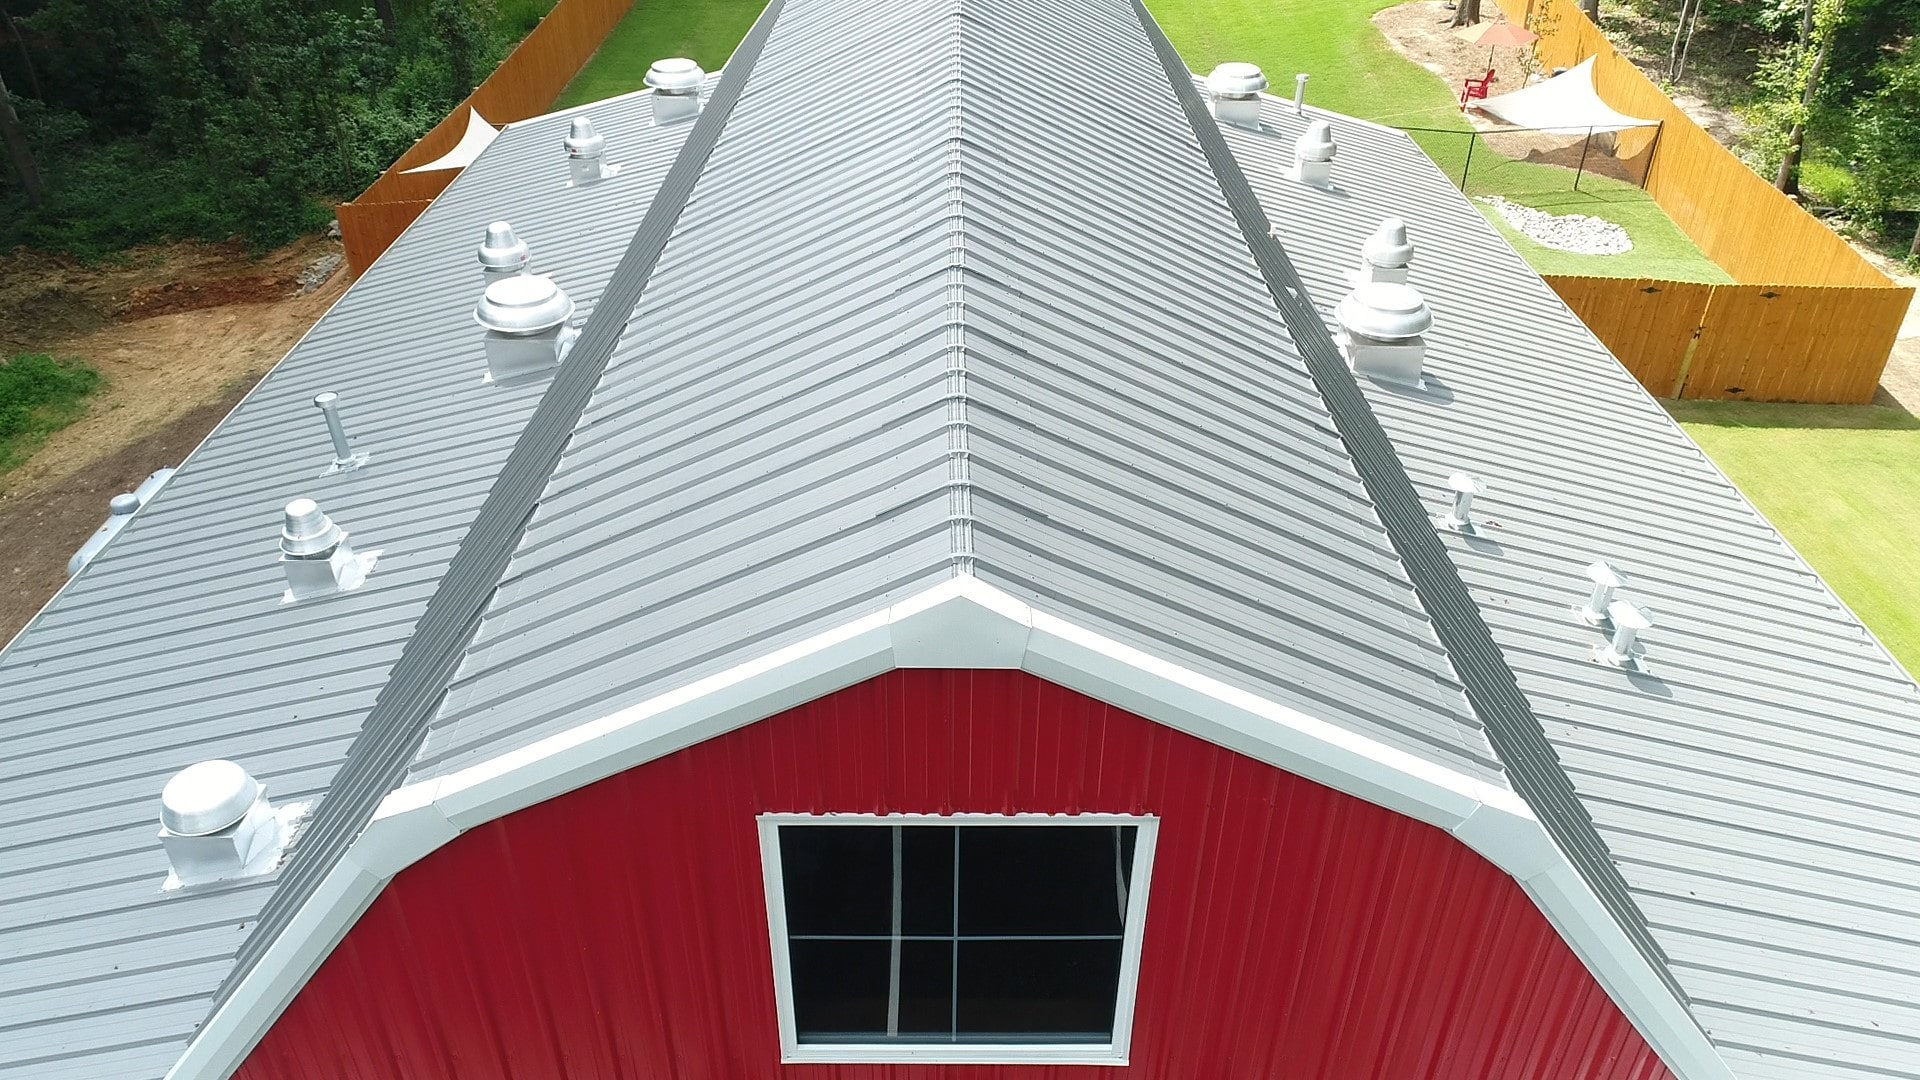 Red gambrel steel barn with 2 leantos view from end wall looking down gambrel roofline.